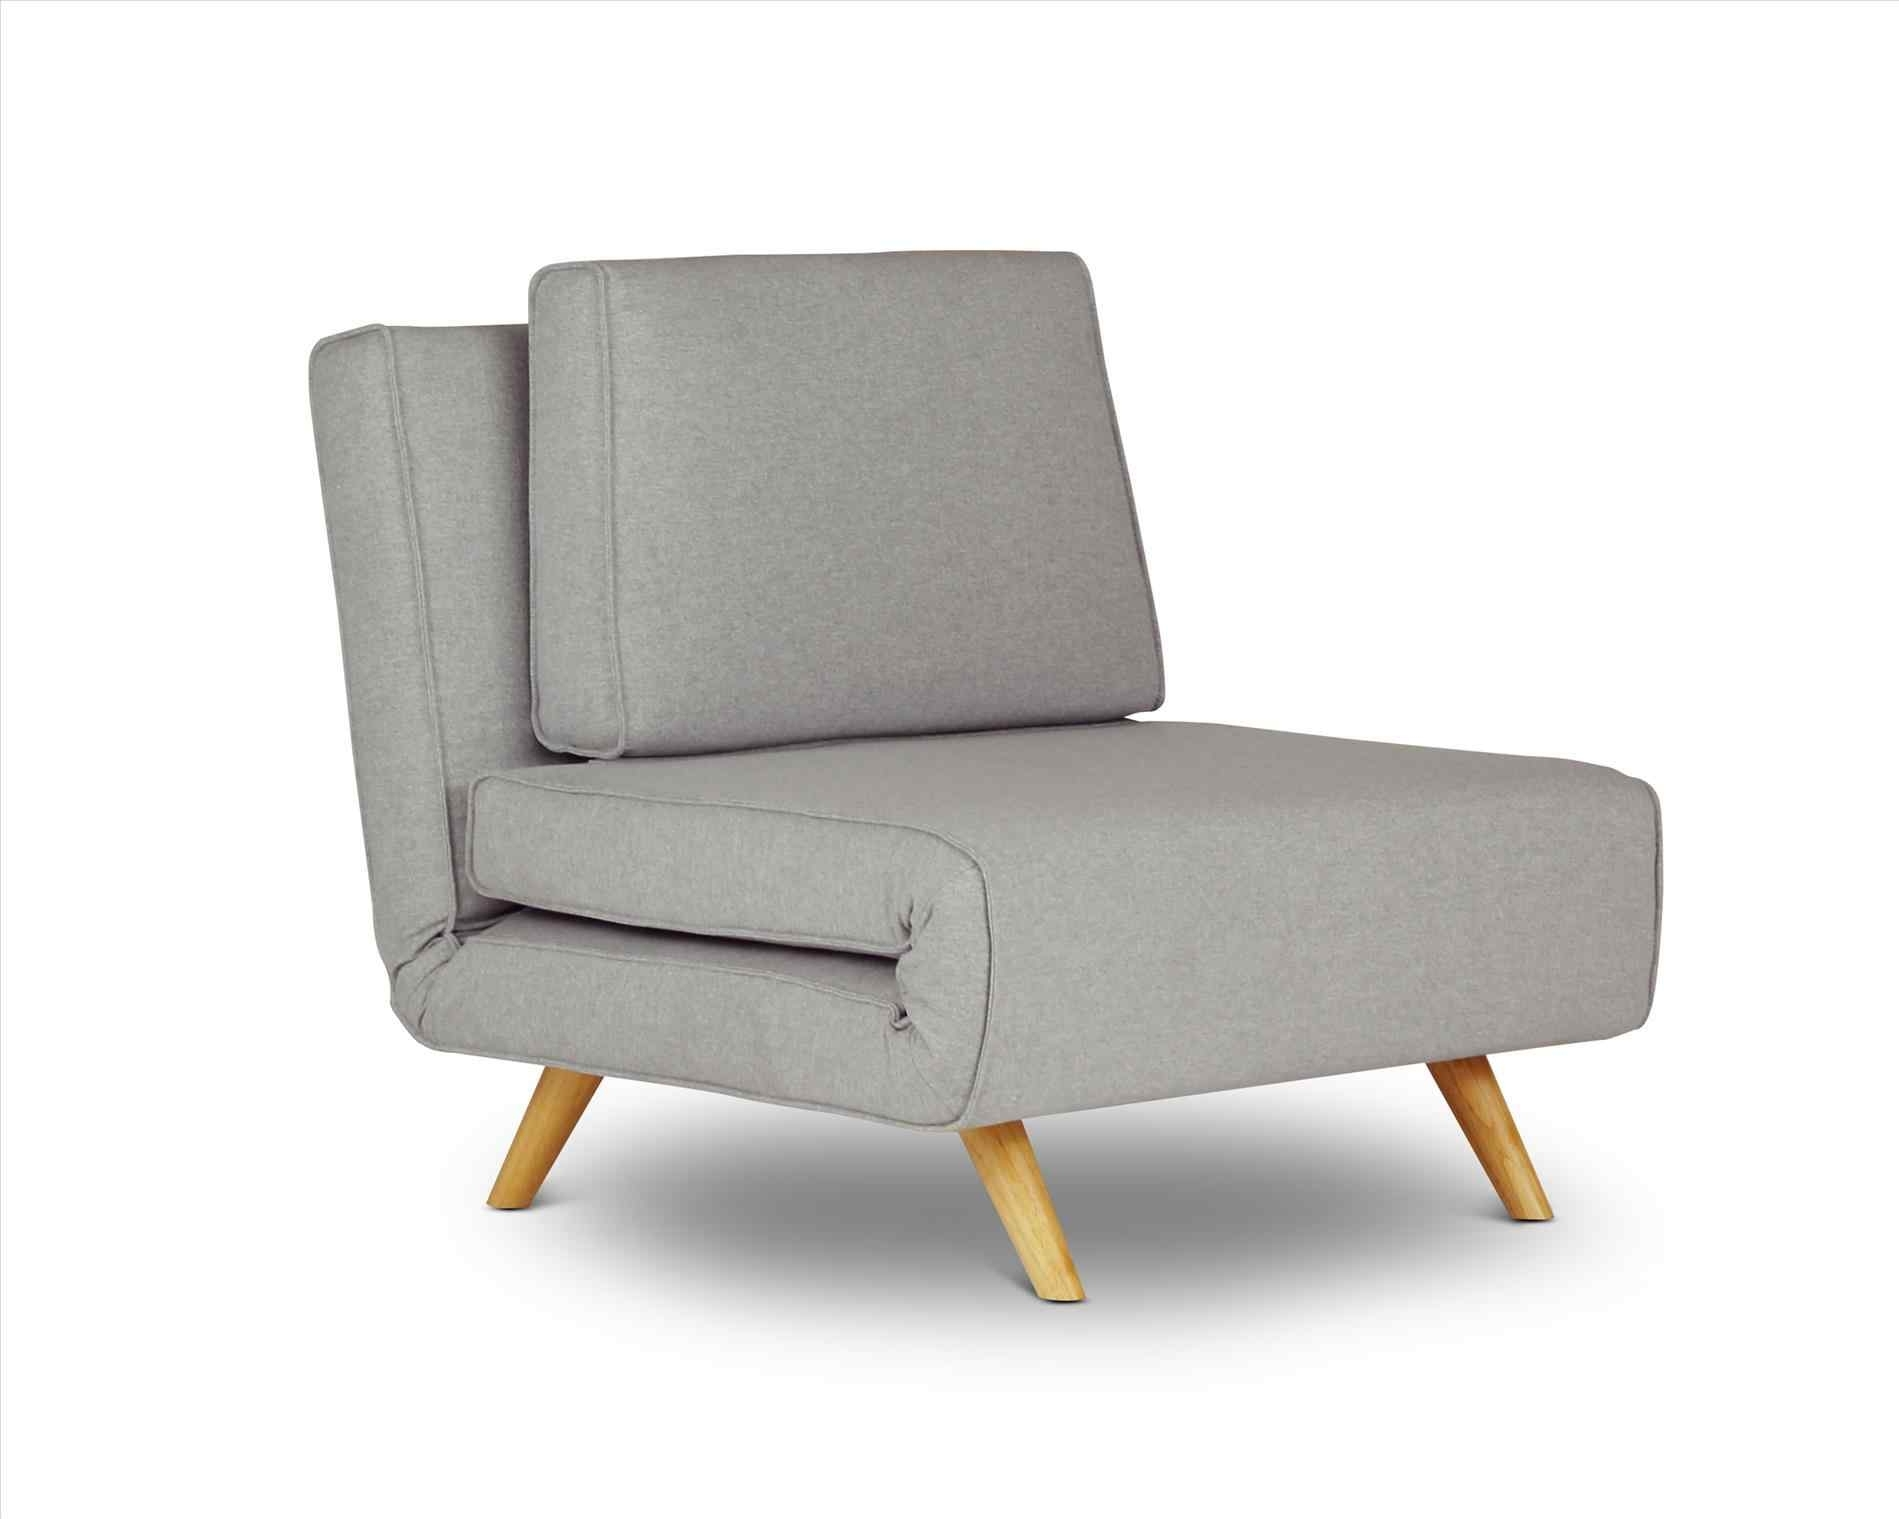 Lovely Single Seater Sofa In Sofas Marvelous Single Person Couch Pertaining To Single Sofas (View 2 of 10)